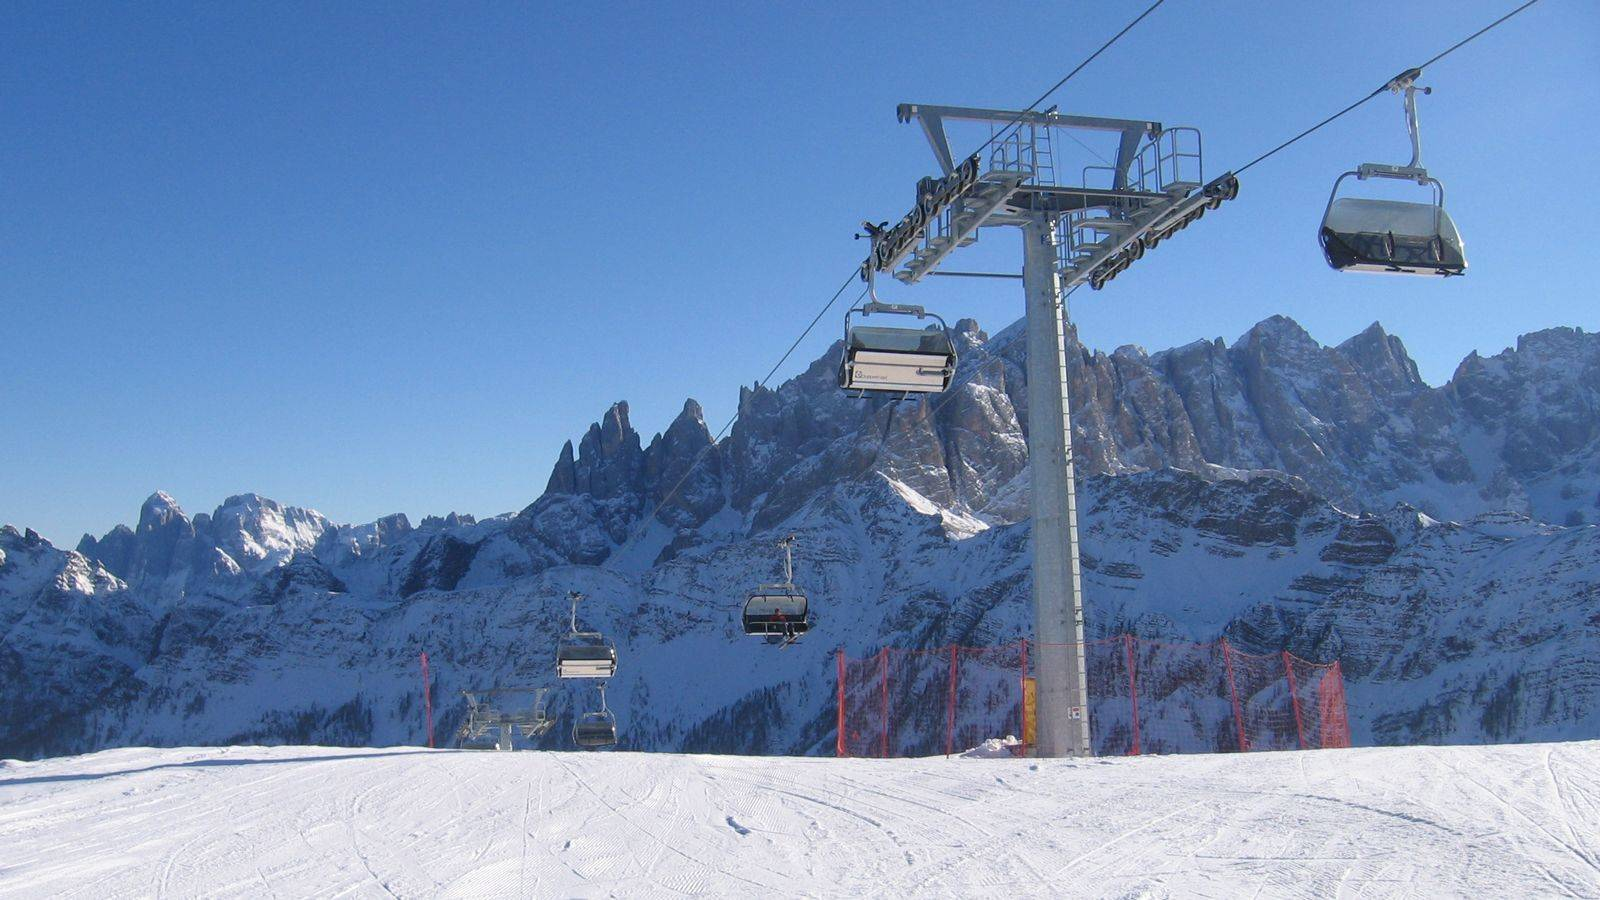 View of the chairlift system at Passo San Pellegrino